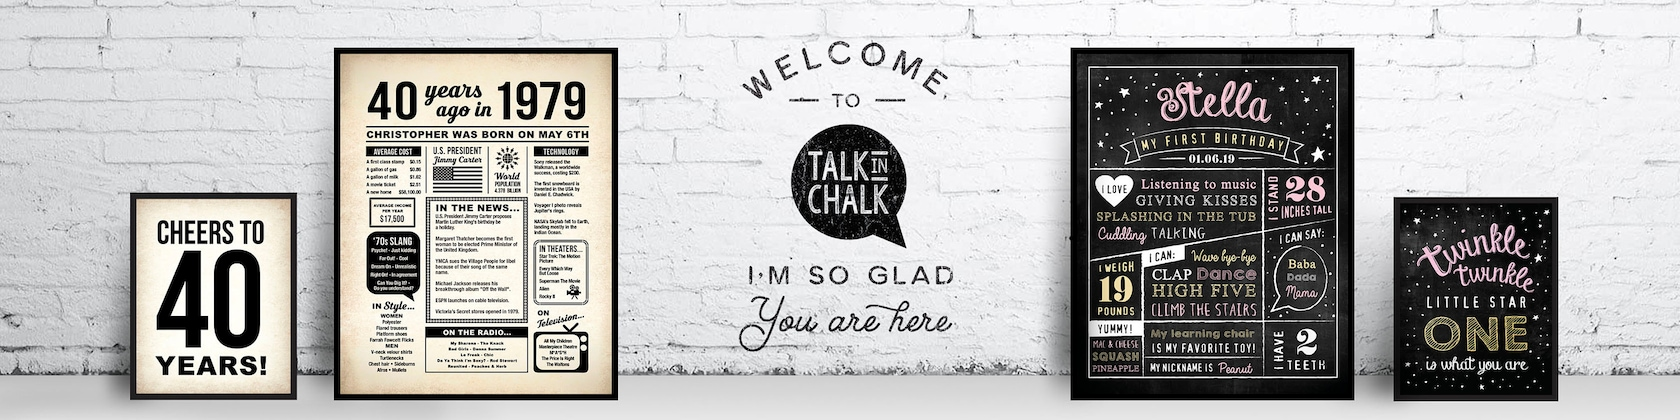 Printable Posters for Life's Special Occasions by TalkInChalk